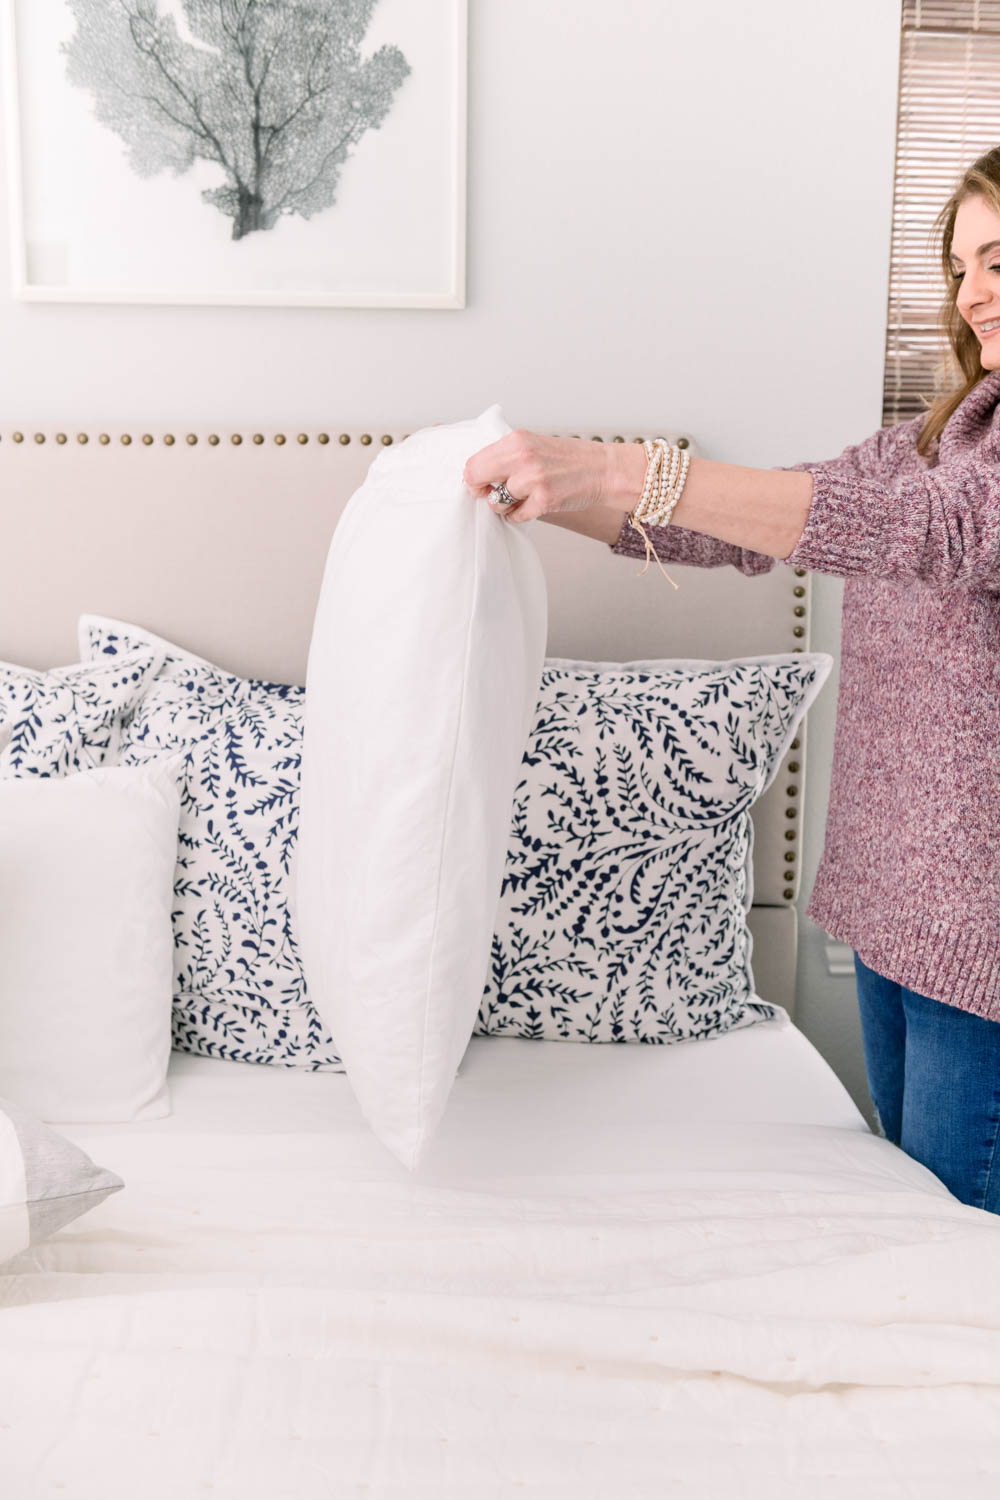 Don't forget to add your standard pillows to the bedding mix to layer a bed like a designer! #ABlissfulNest #bedroom #bedding